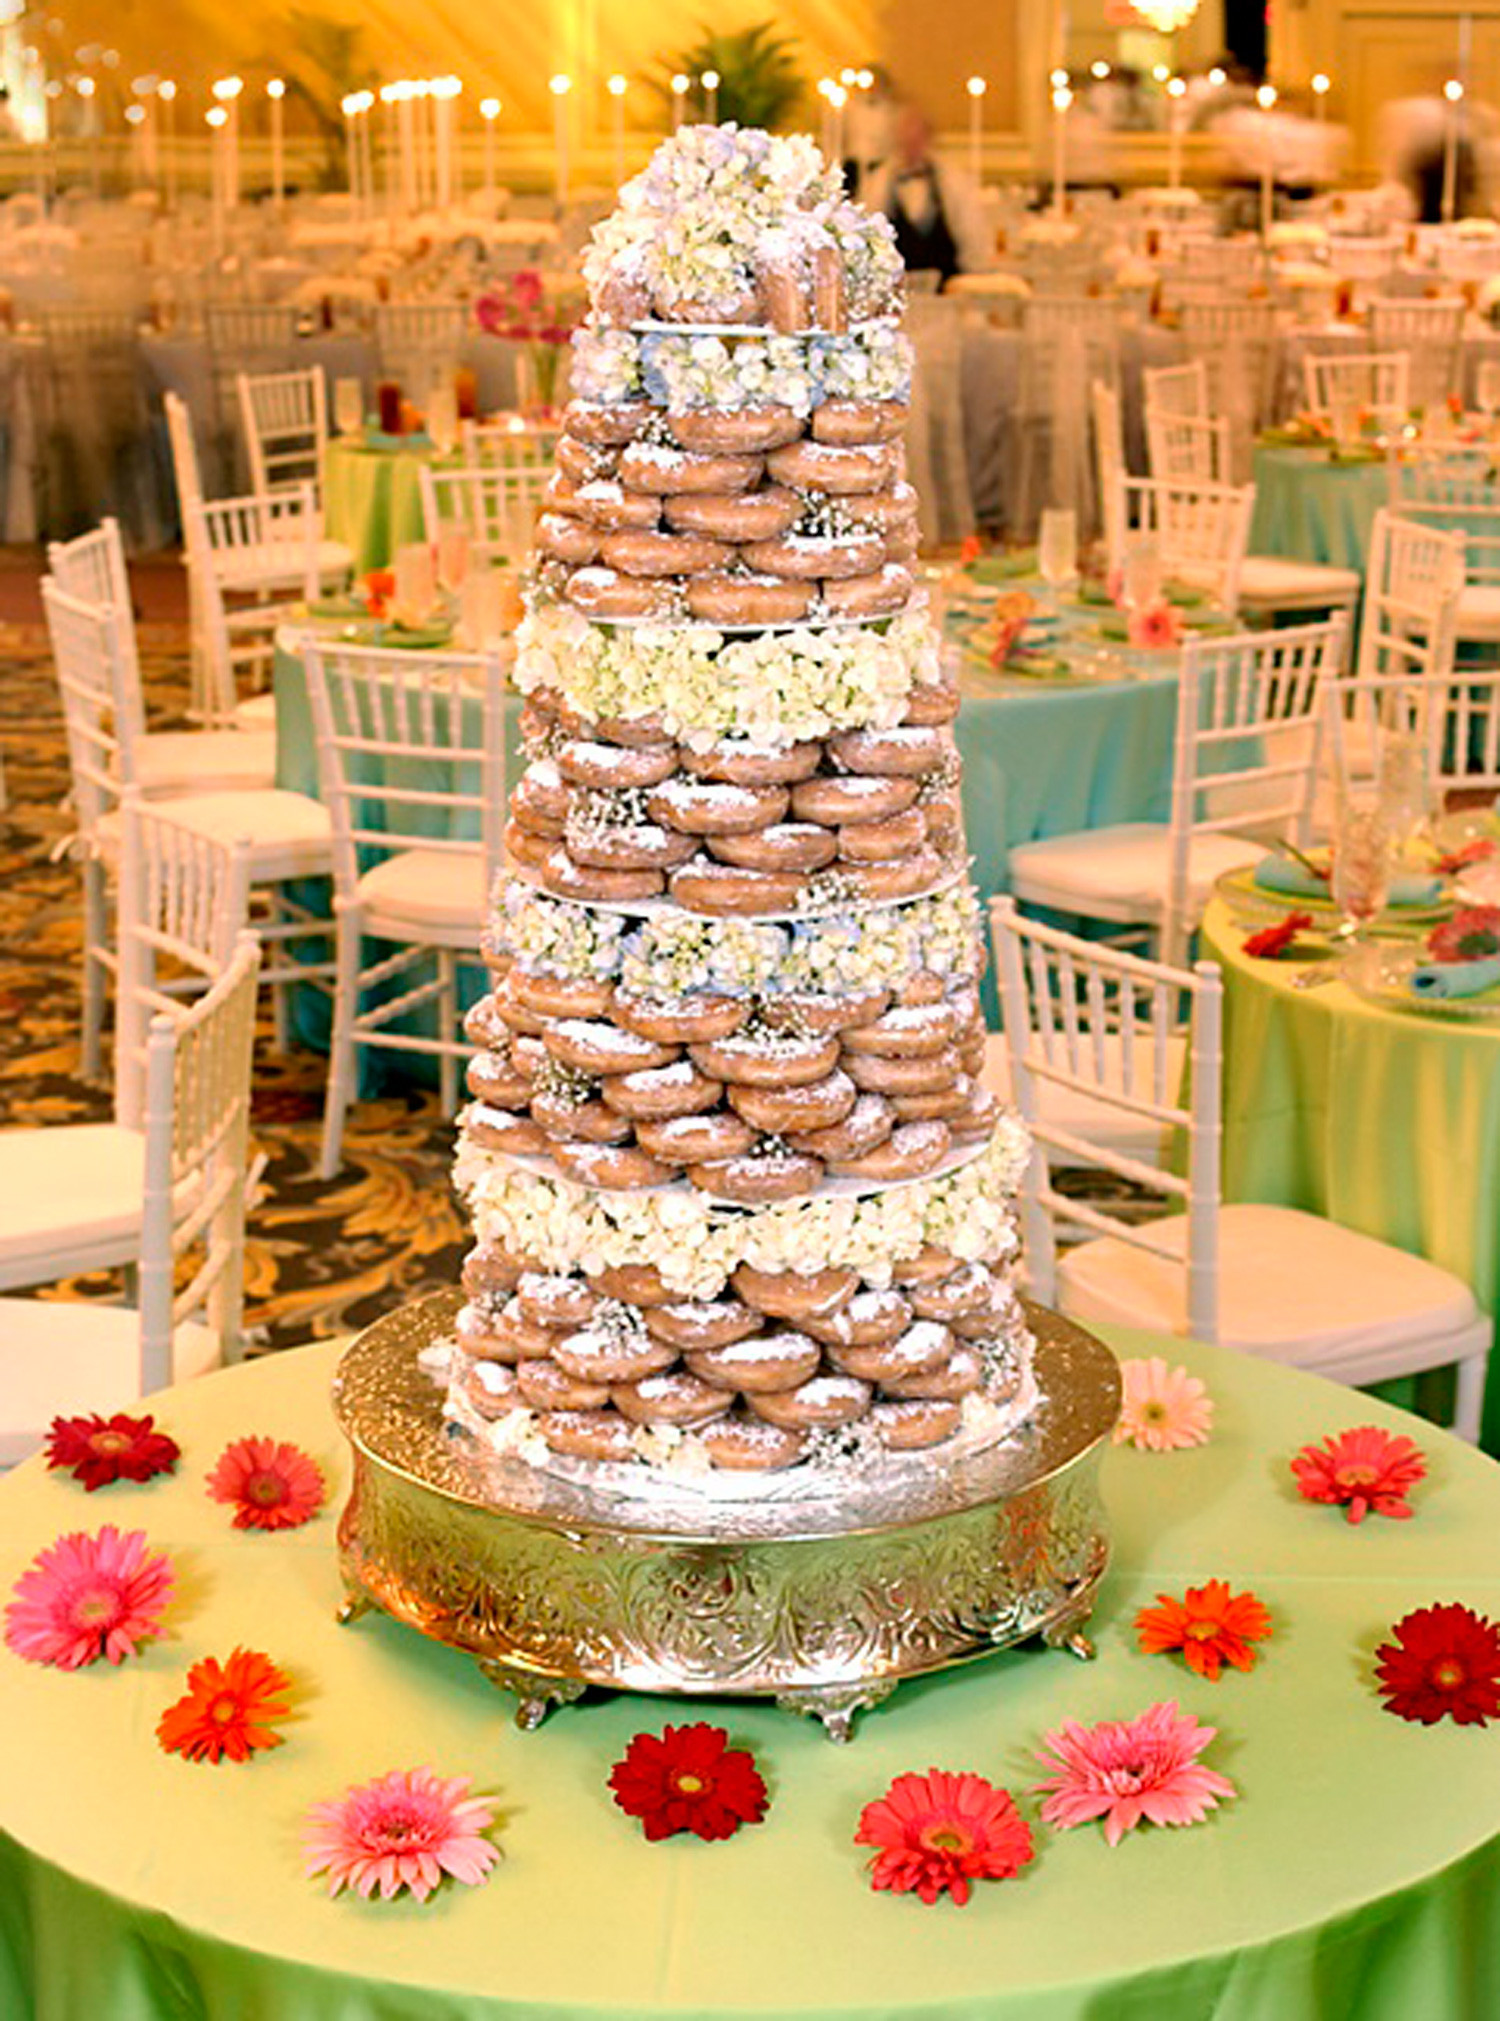 Donut Wedding Cakes  National Donut Day Great Innovations Since 1958